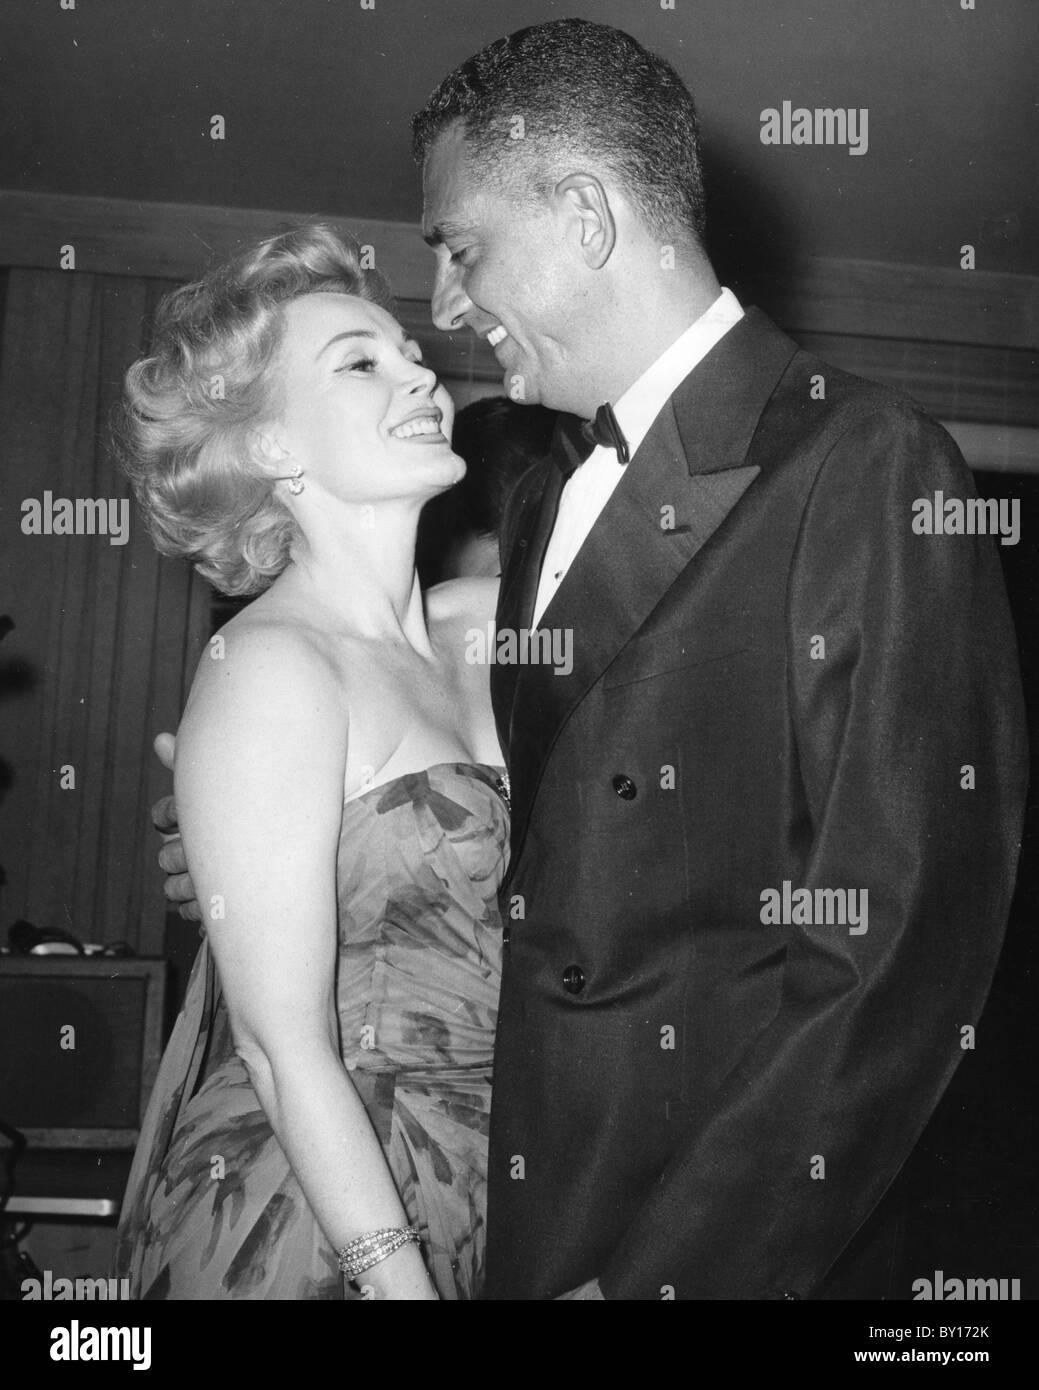 ZSA ZSA GABOR Hungarian-American film actress with Brazilian industrialist Francisco Pignatari about 1956 - Stock Image